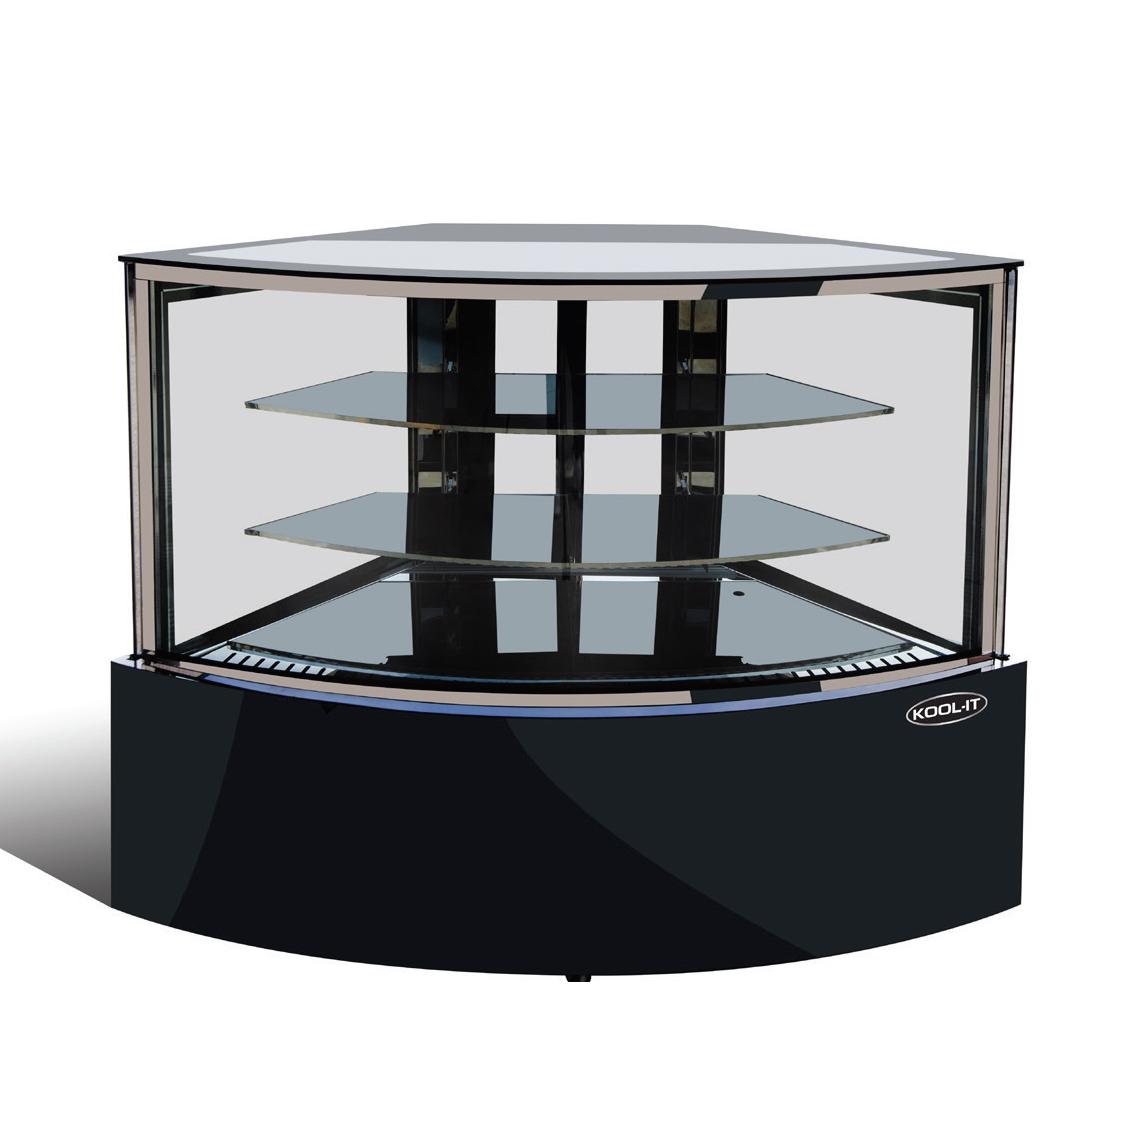 MVP KBF-60CD display case, non-refrigerated bakery